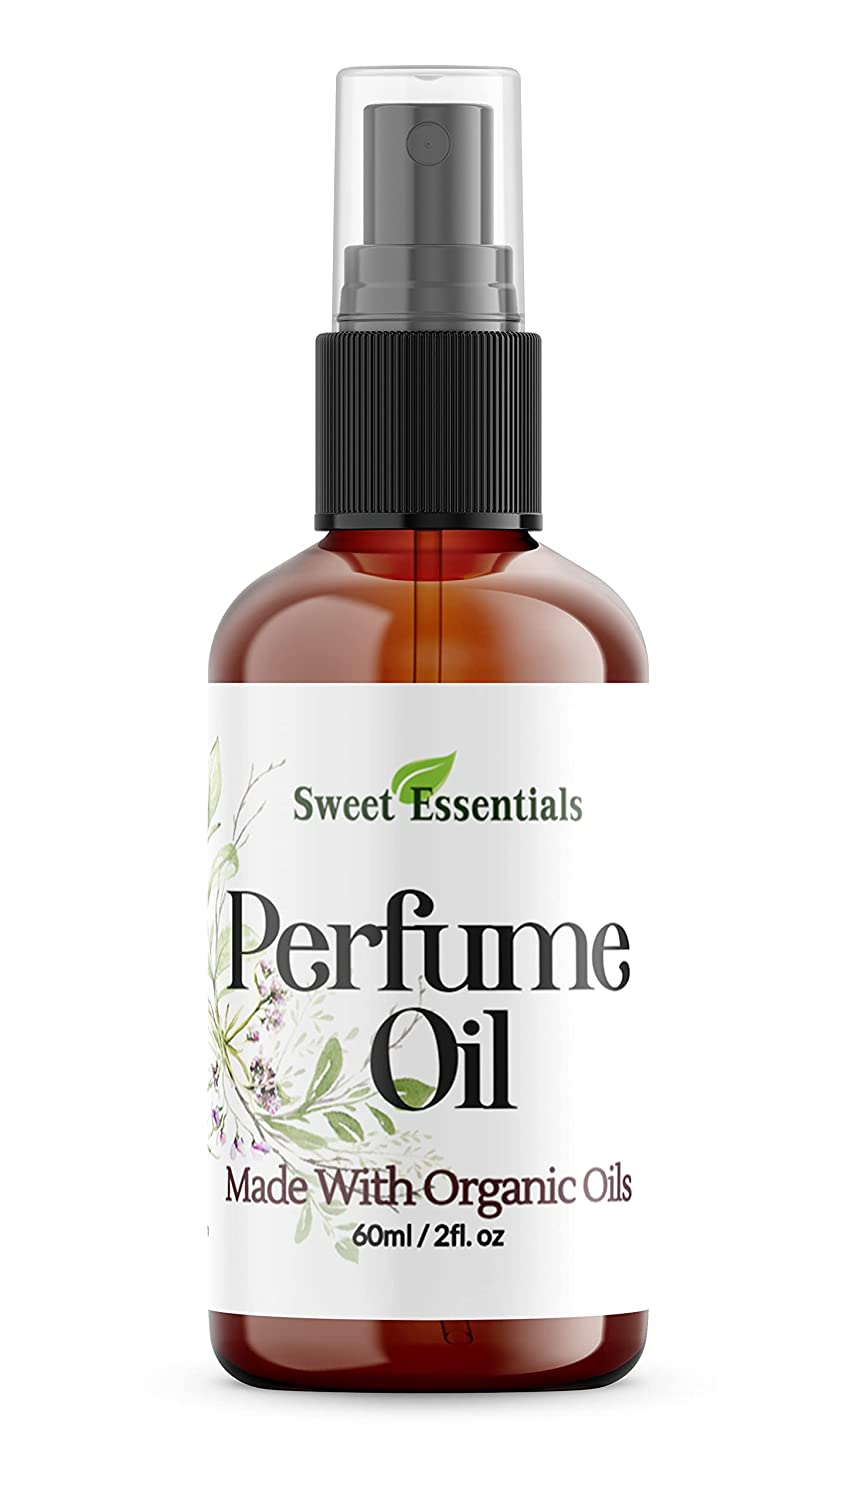 Sweet Raspberries Cheap mail order shopping Fragrance Perfume Oil Organic with Genuine Oi Made